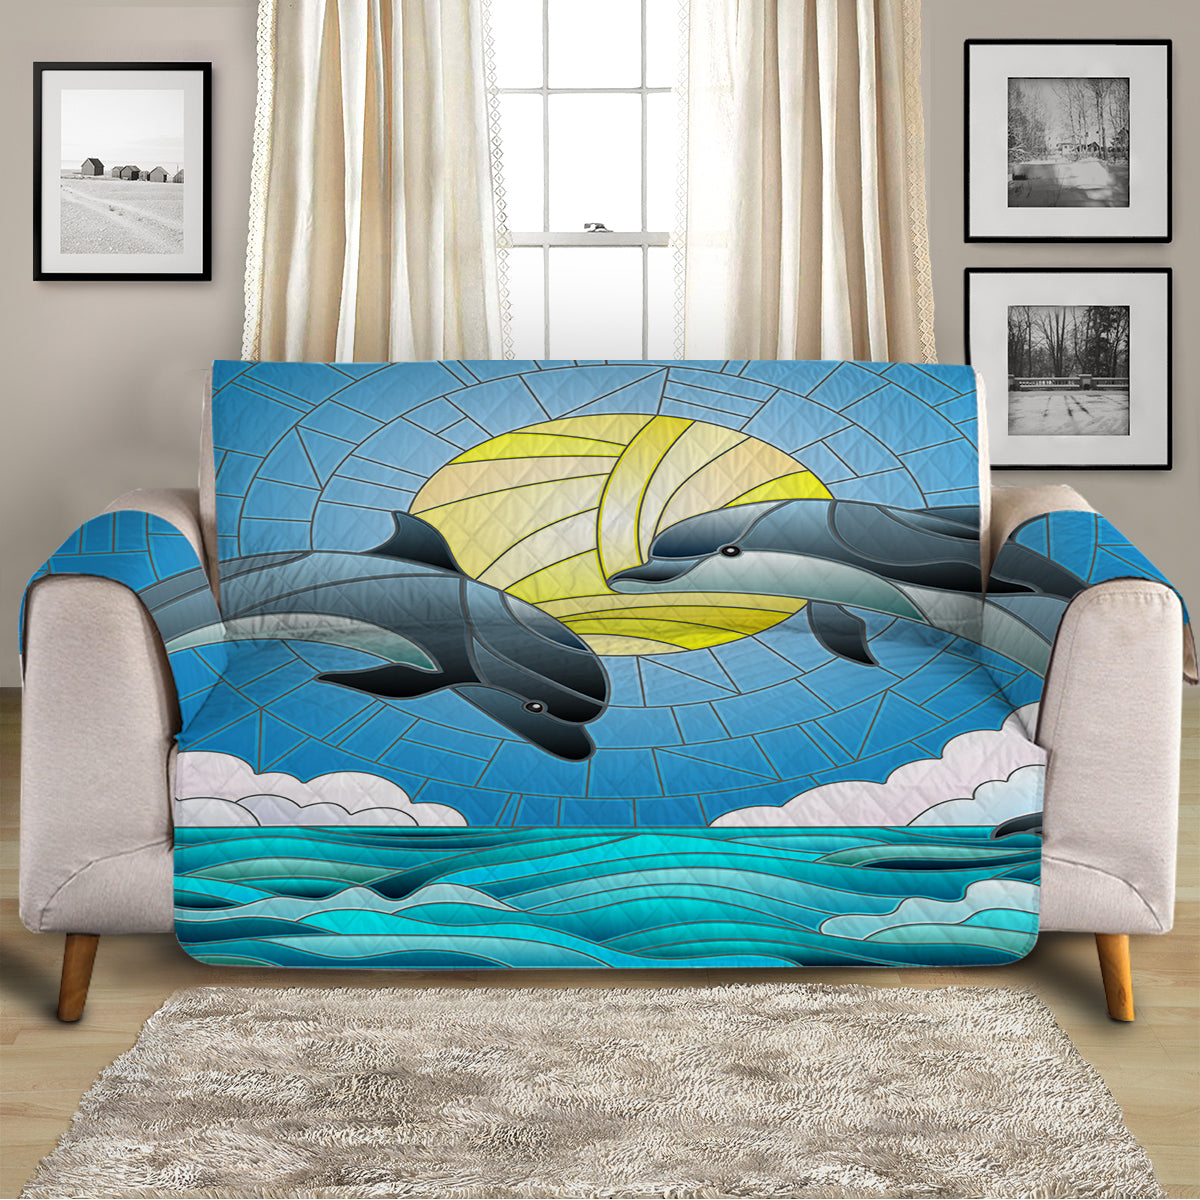 Dolphin Dancing Sofa Cover